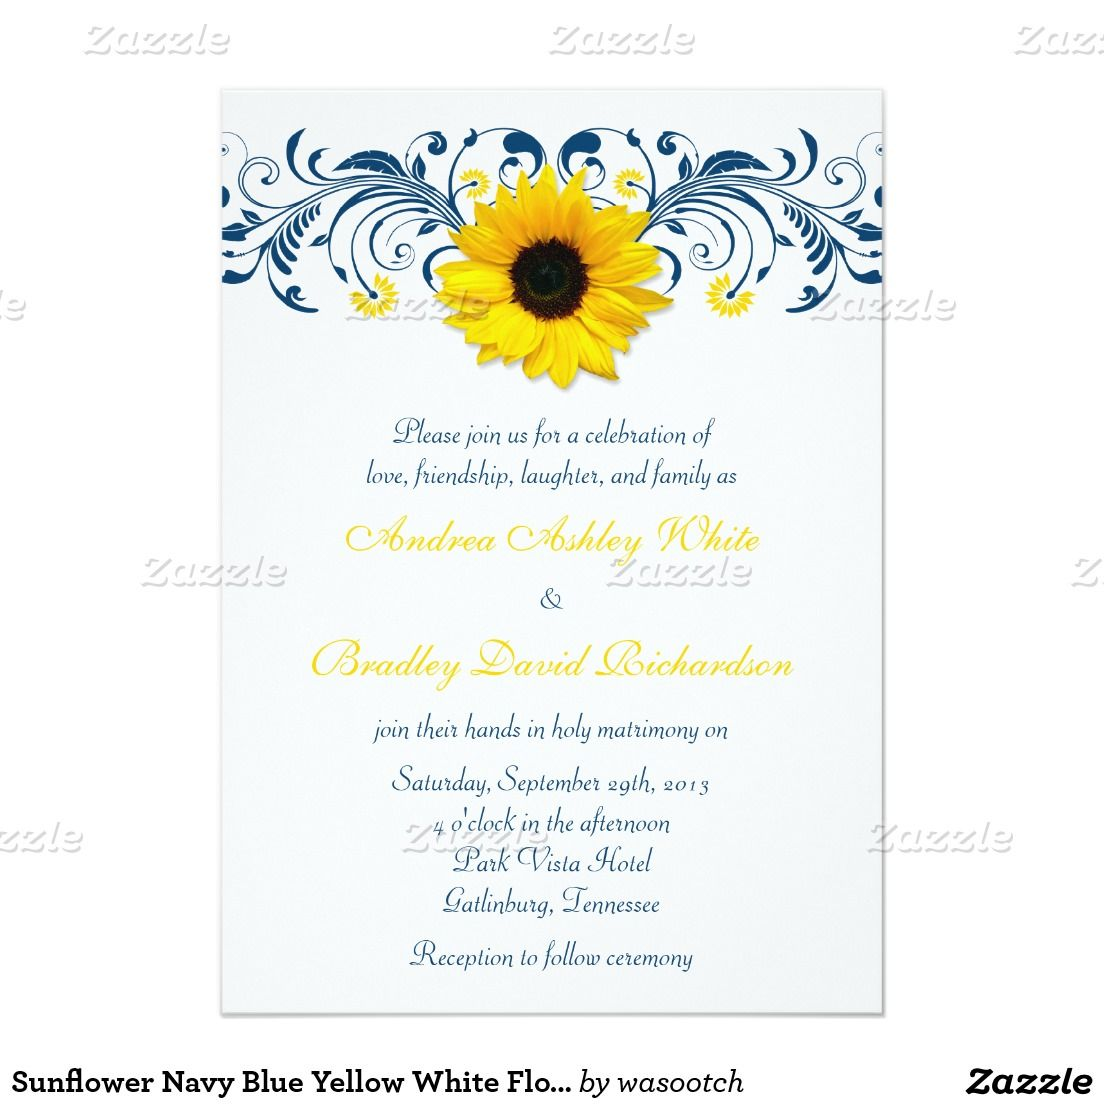 Sunflower Navy Blue Yellow White Floral Wedding Invitation